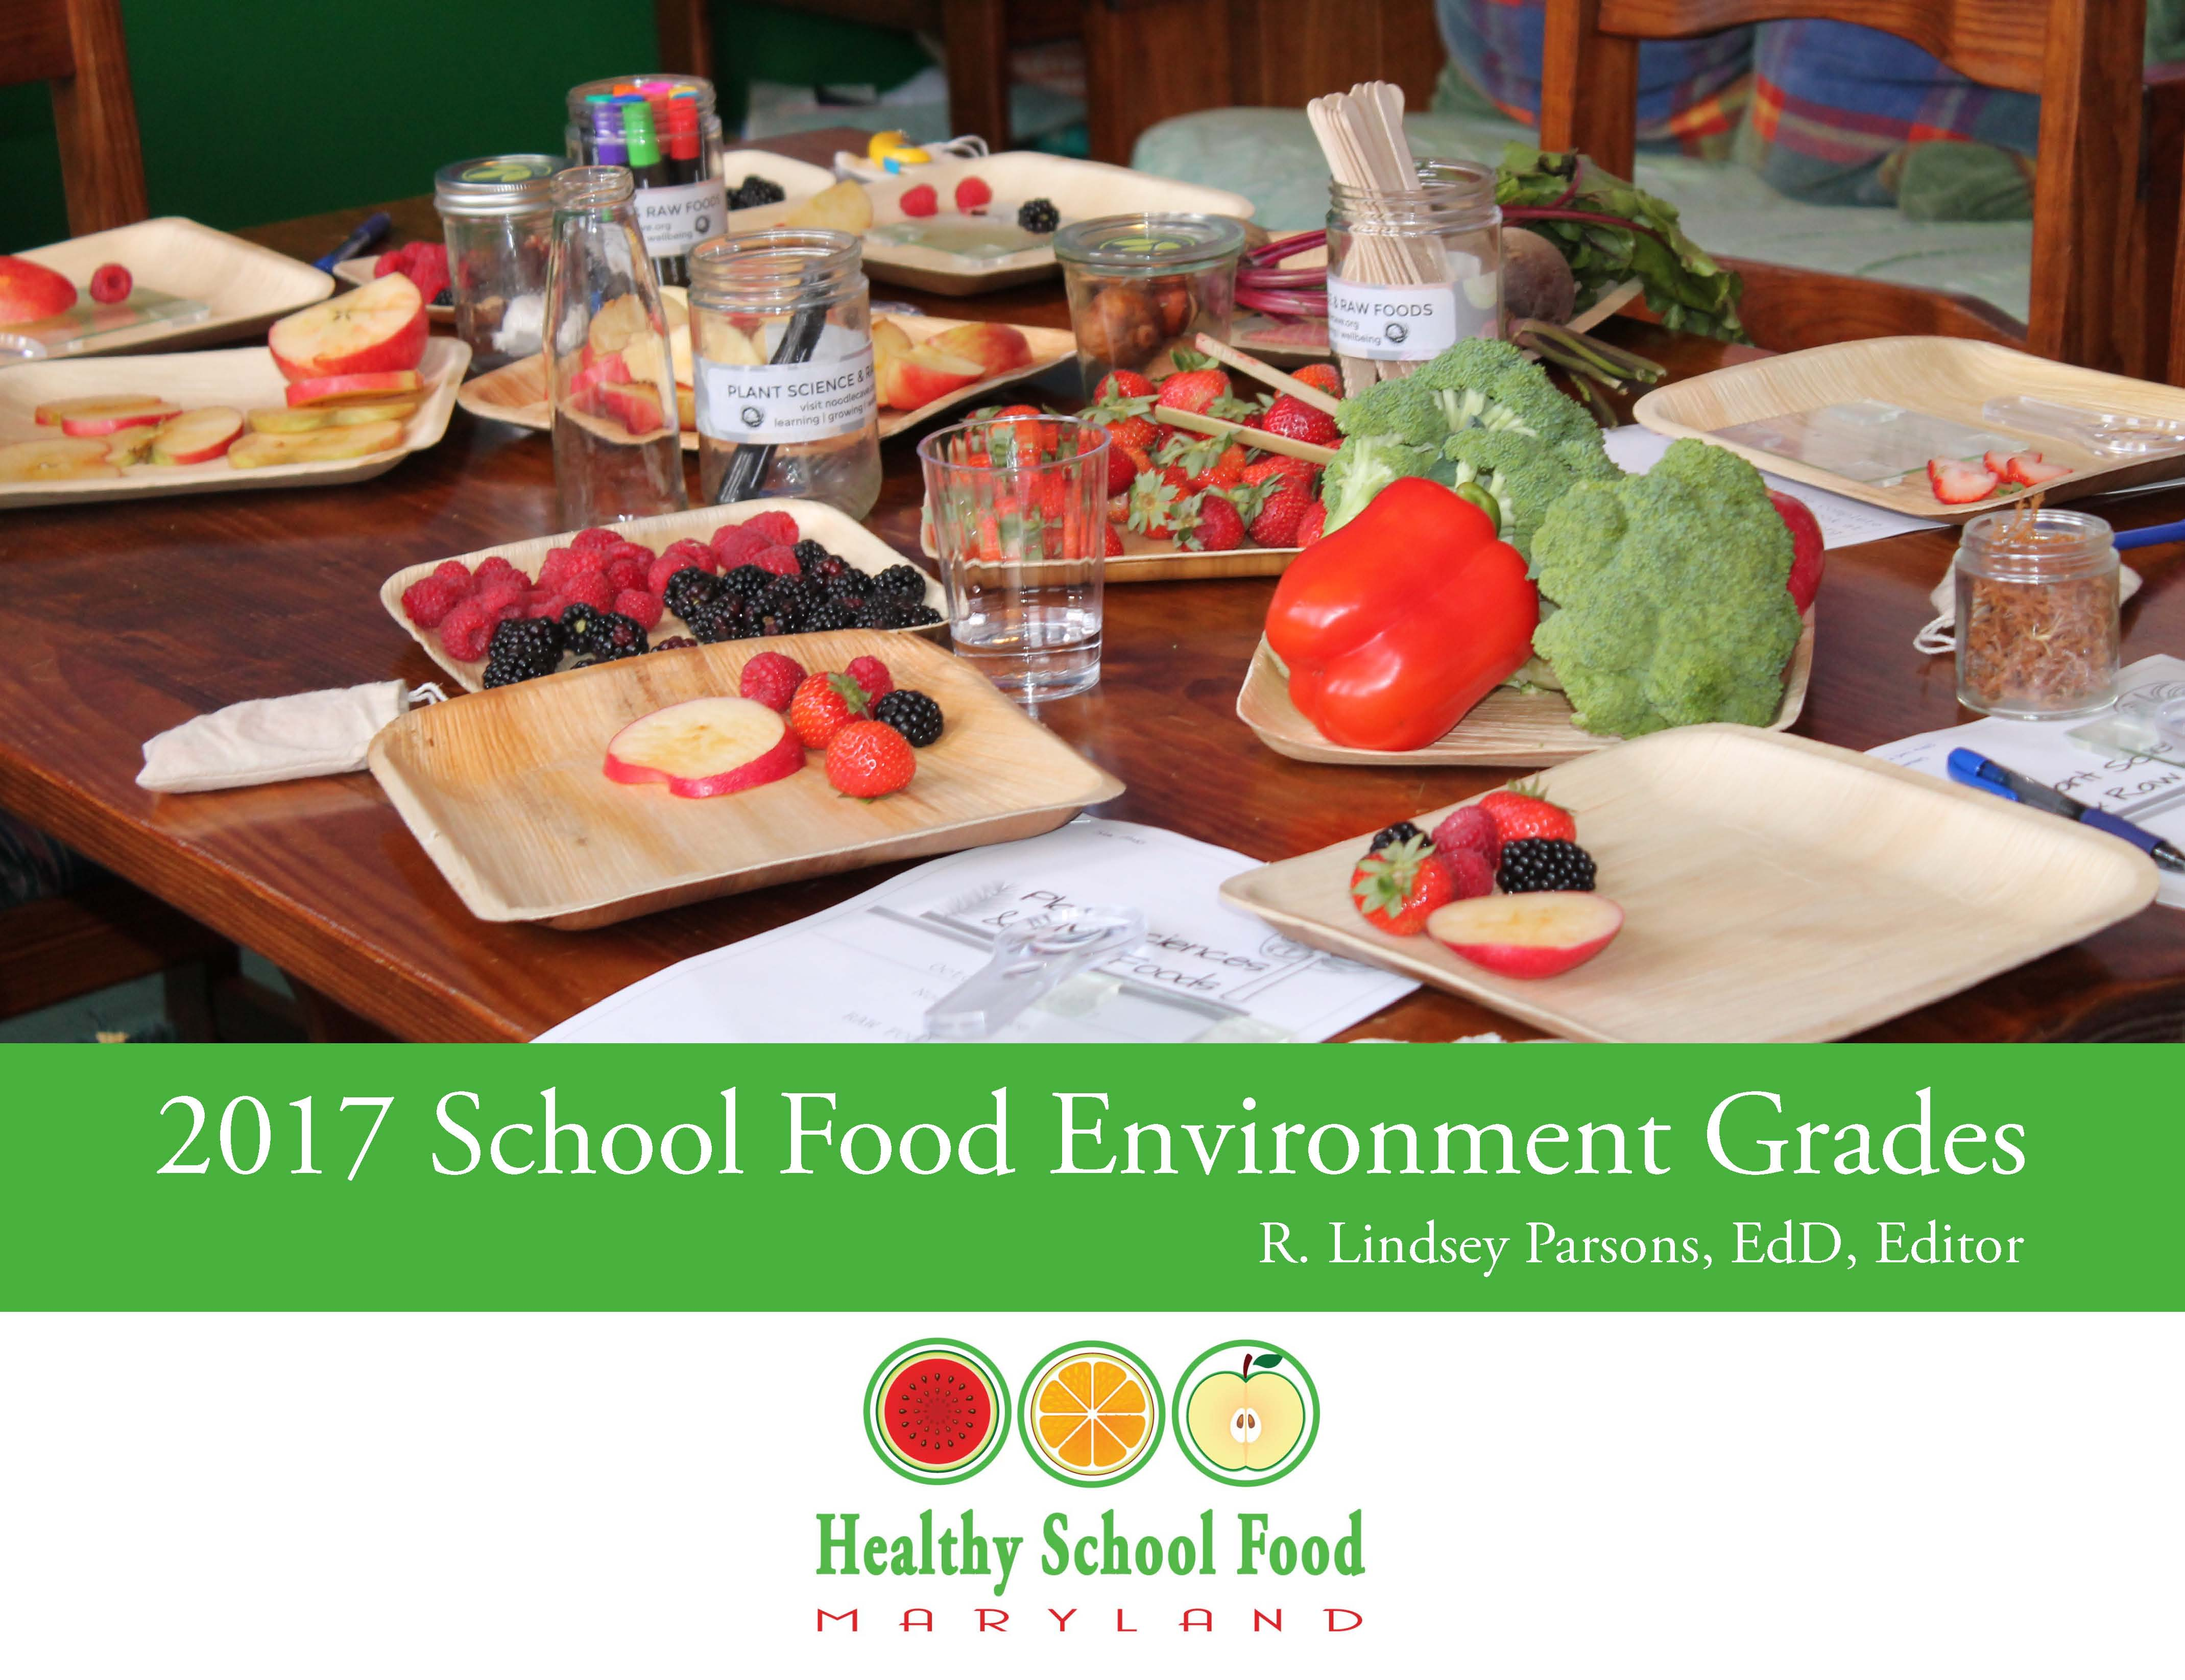 School Food Environment Grades report card